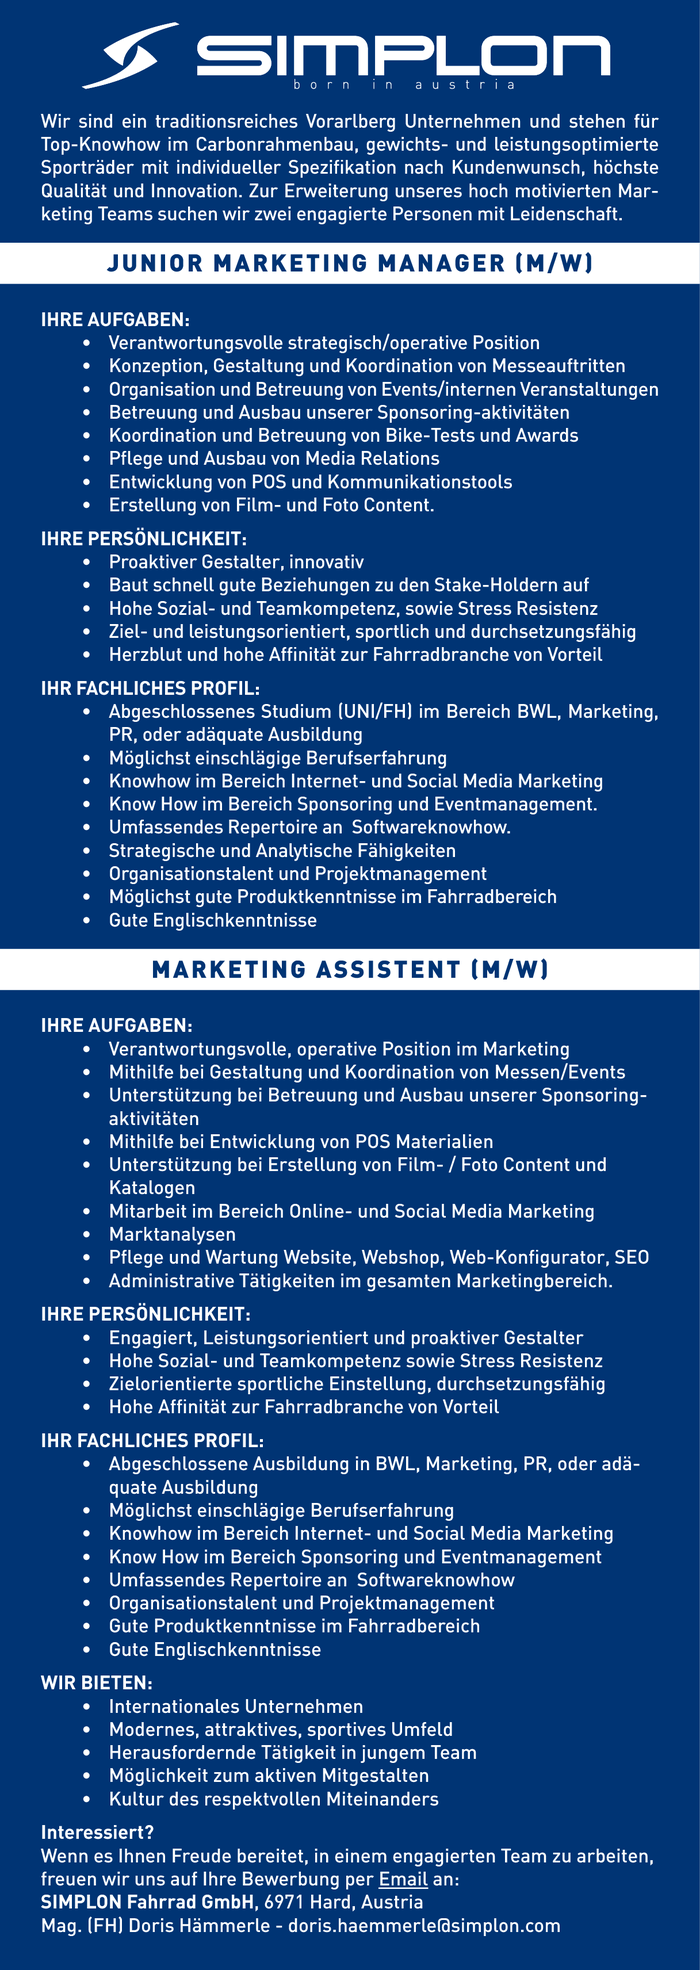 Junior Marketing Manager/in, Marketing Assistent/in